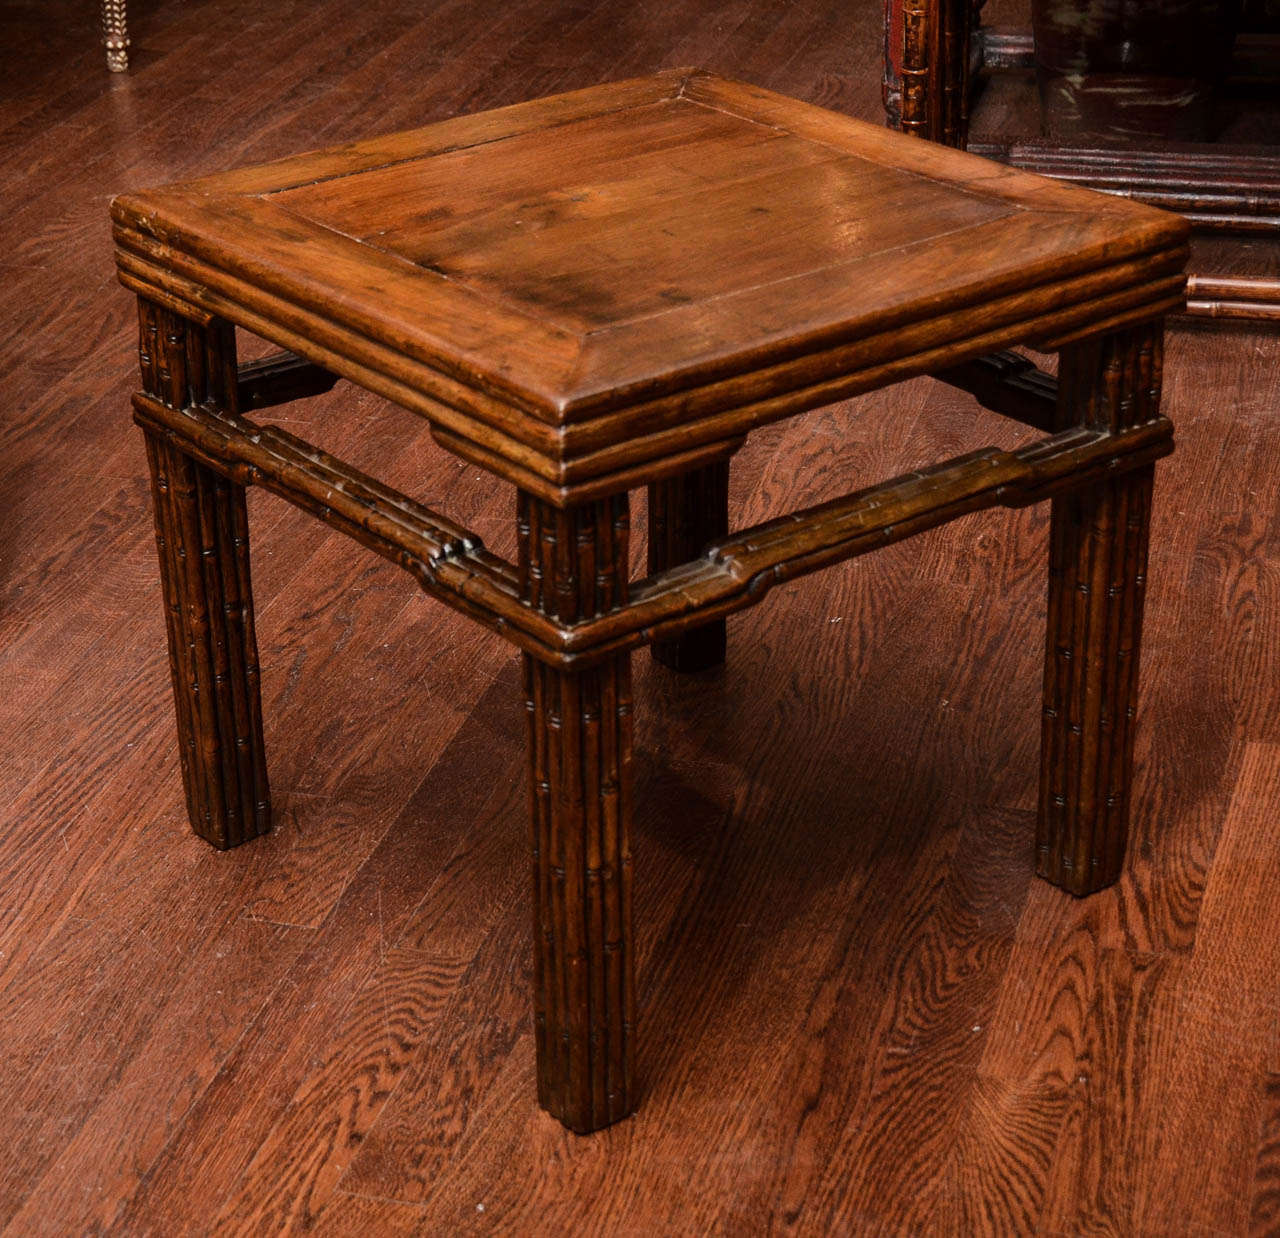 Turn of the century Qing dynasty faux bamboo carved stool with reeded decoration.